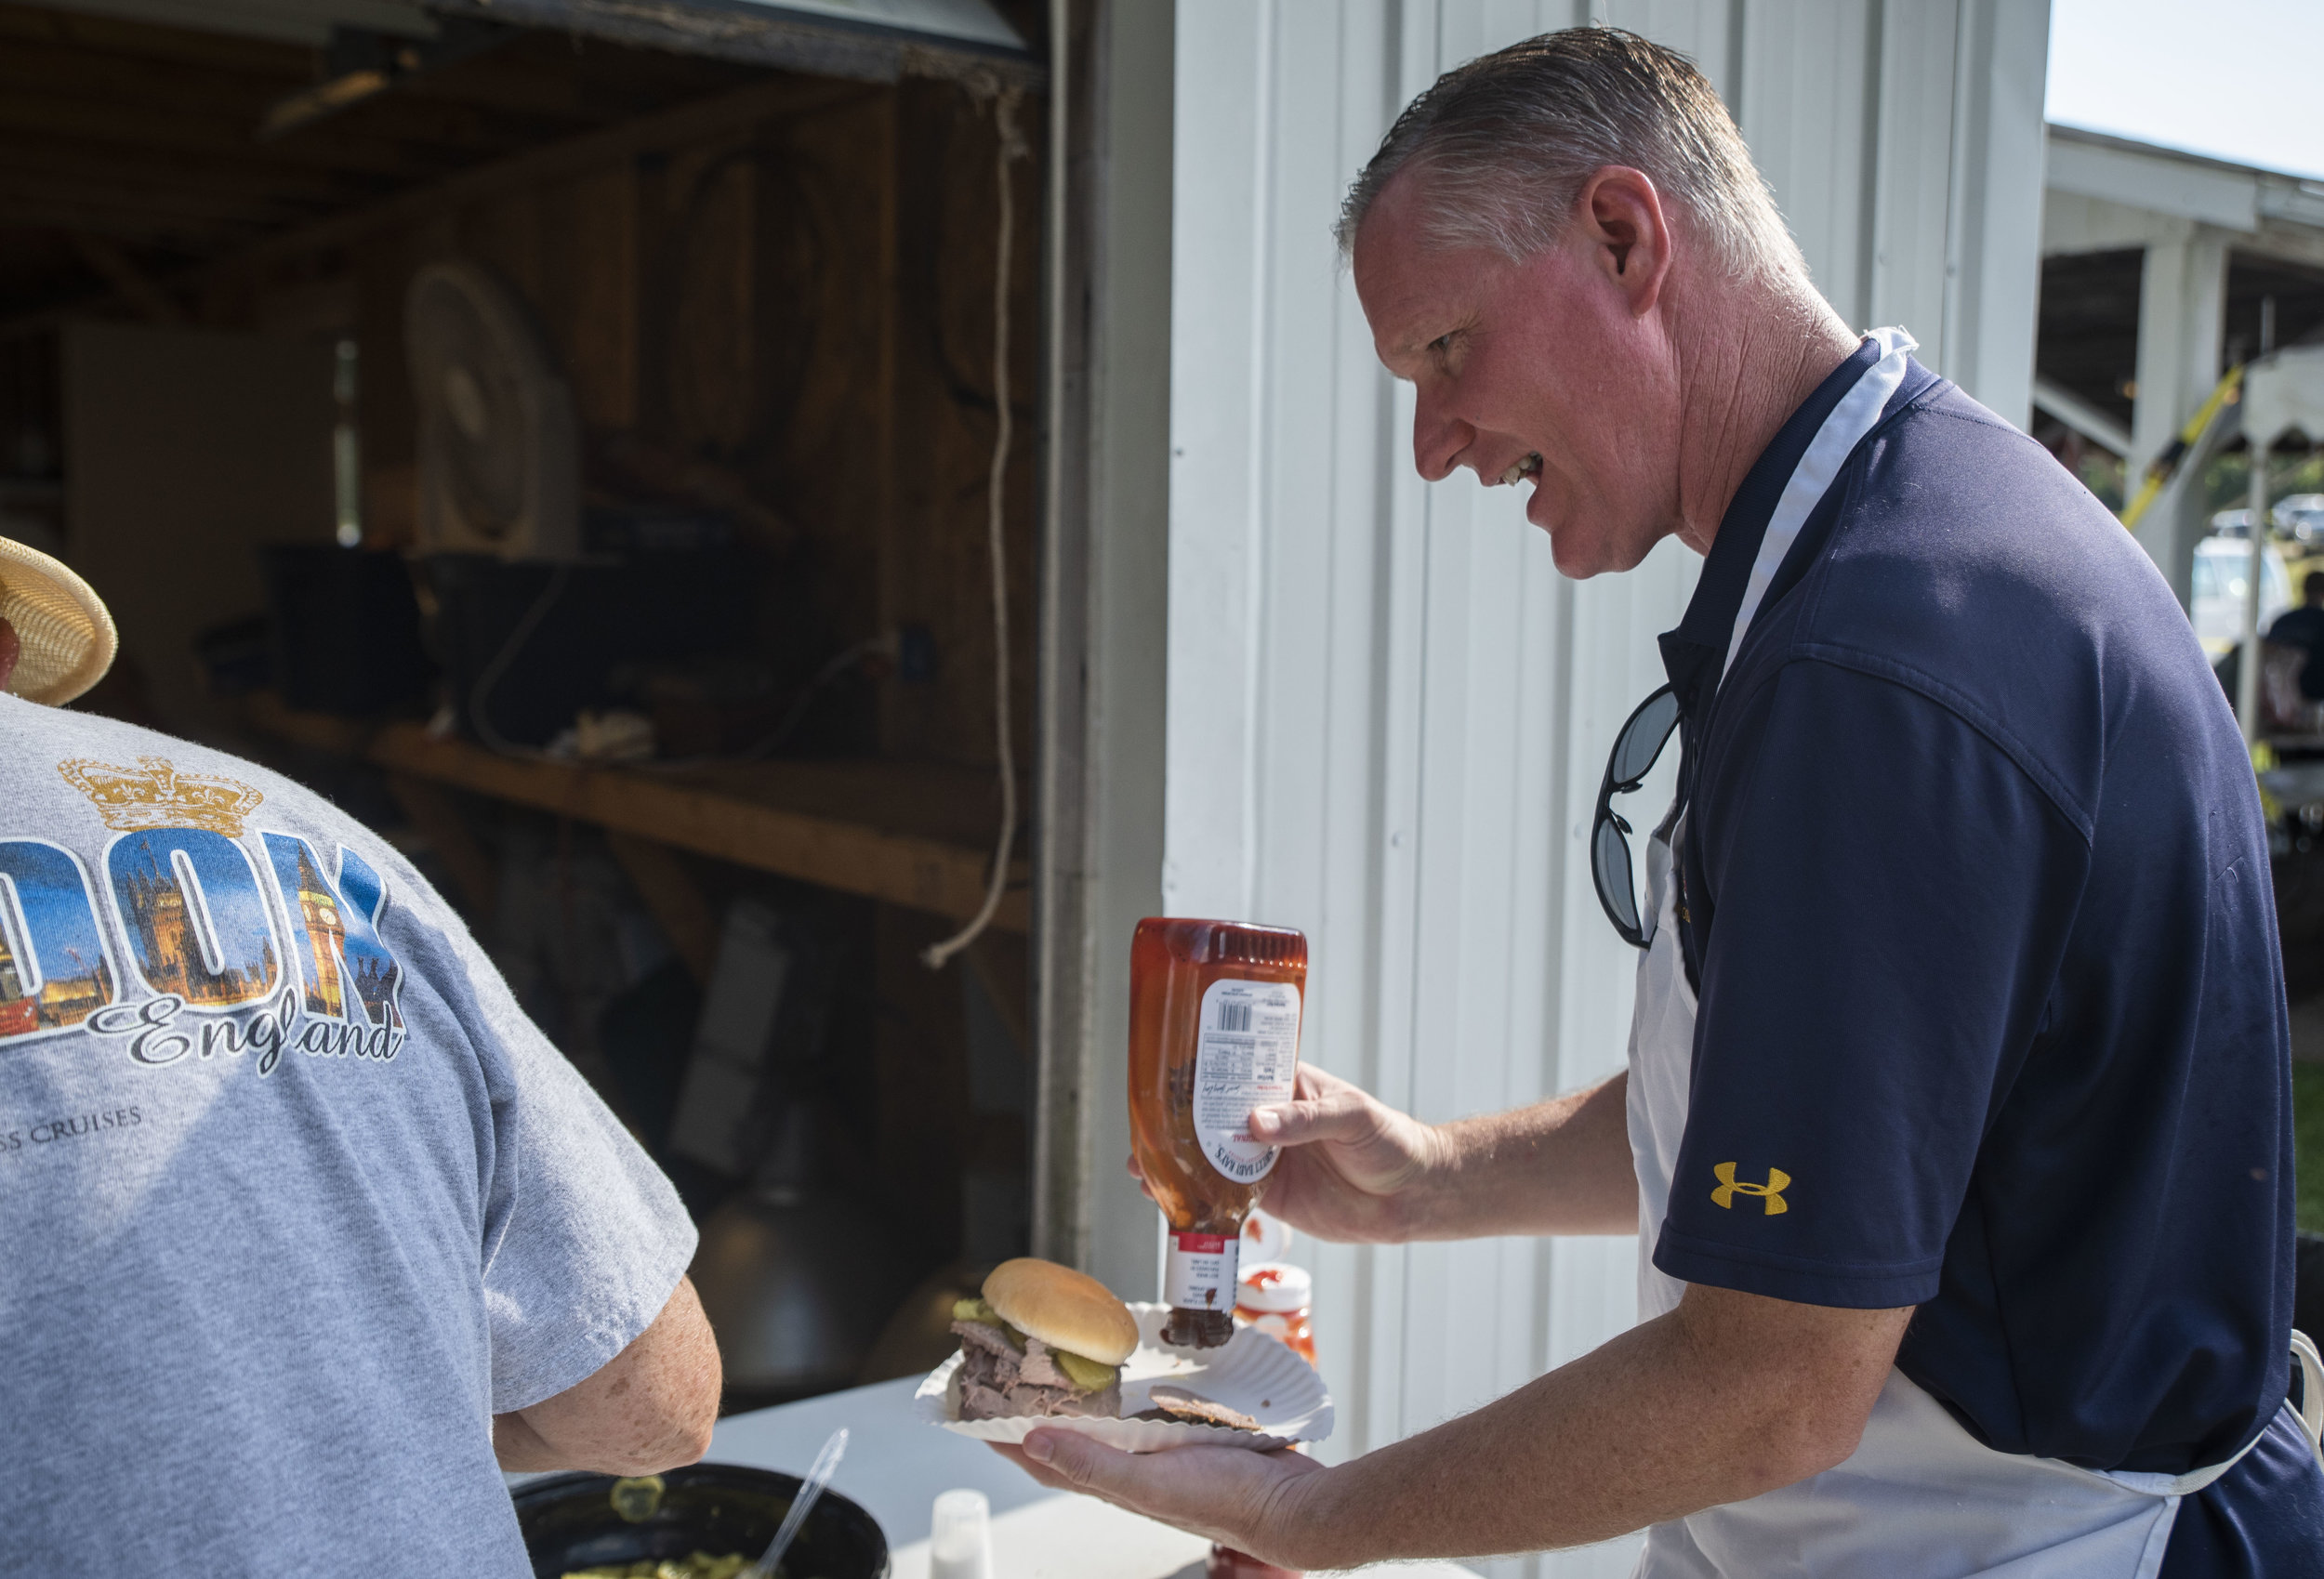 U.S. Representative, Steve Stivers (OH-15) places condiments on his sandwich while interacting with a member of the West Jefferson community.